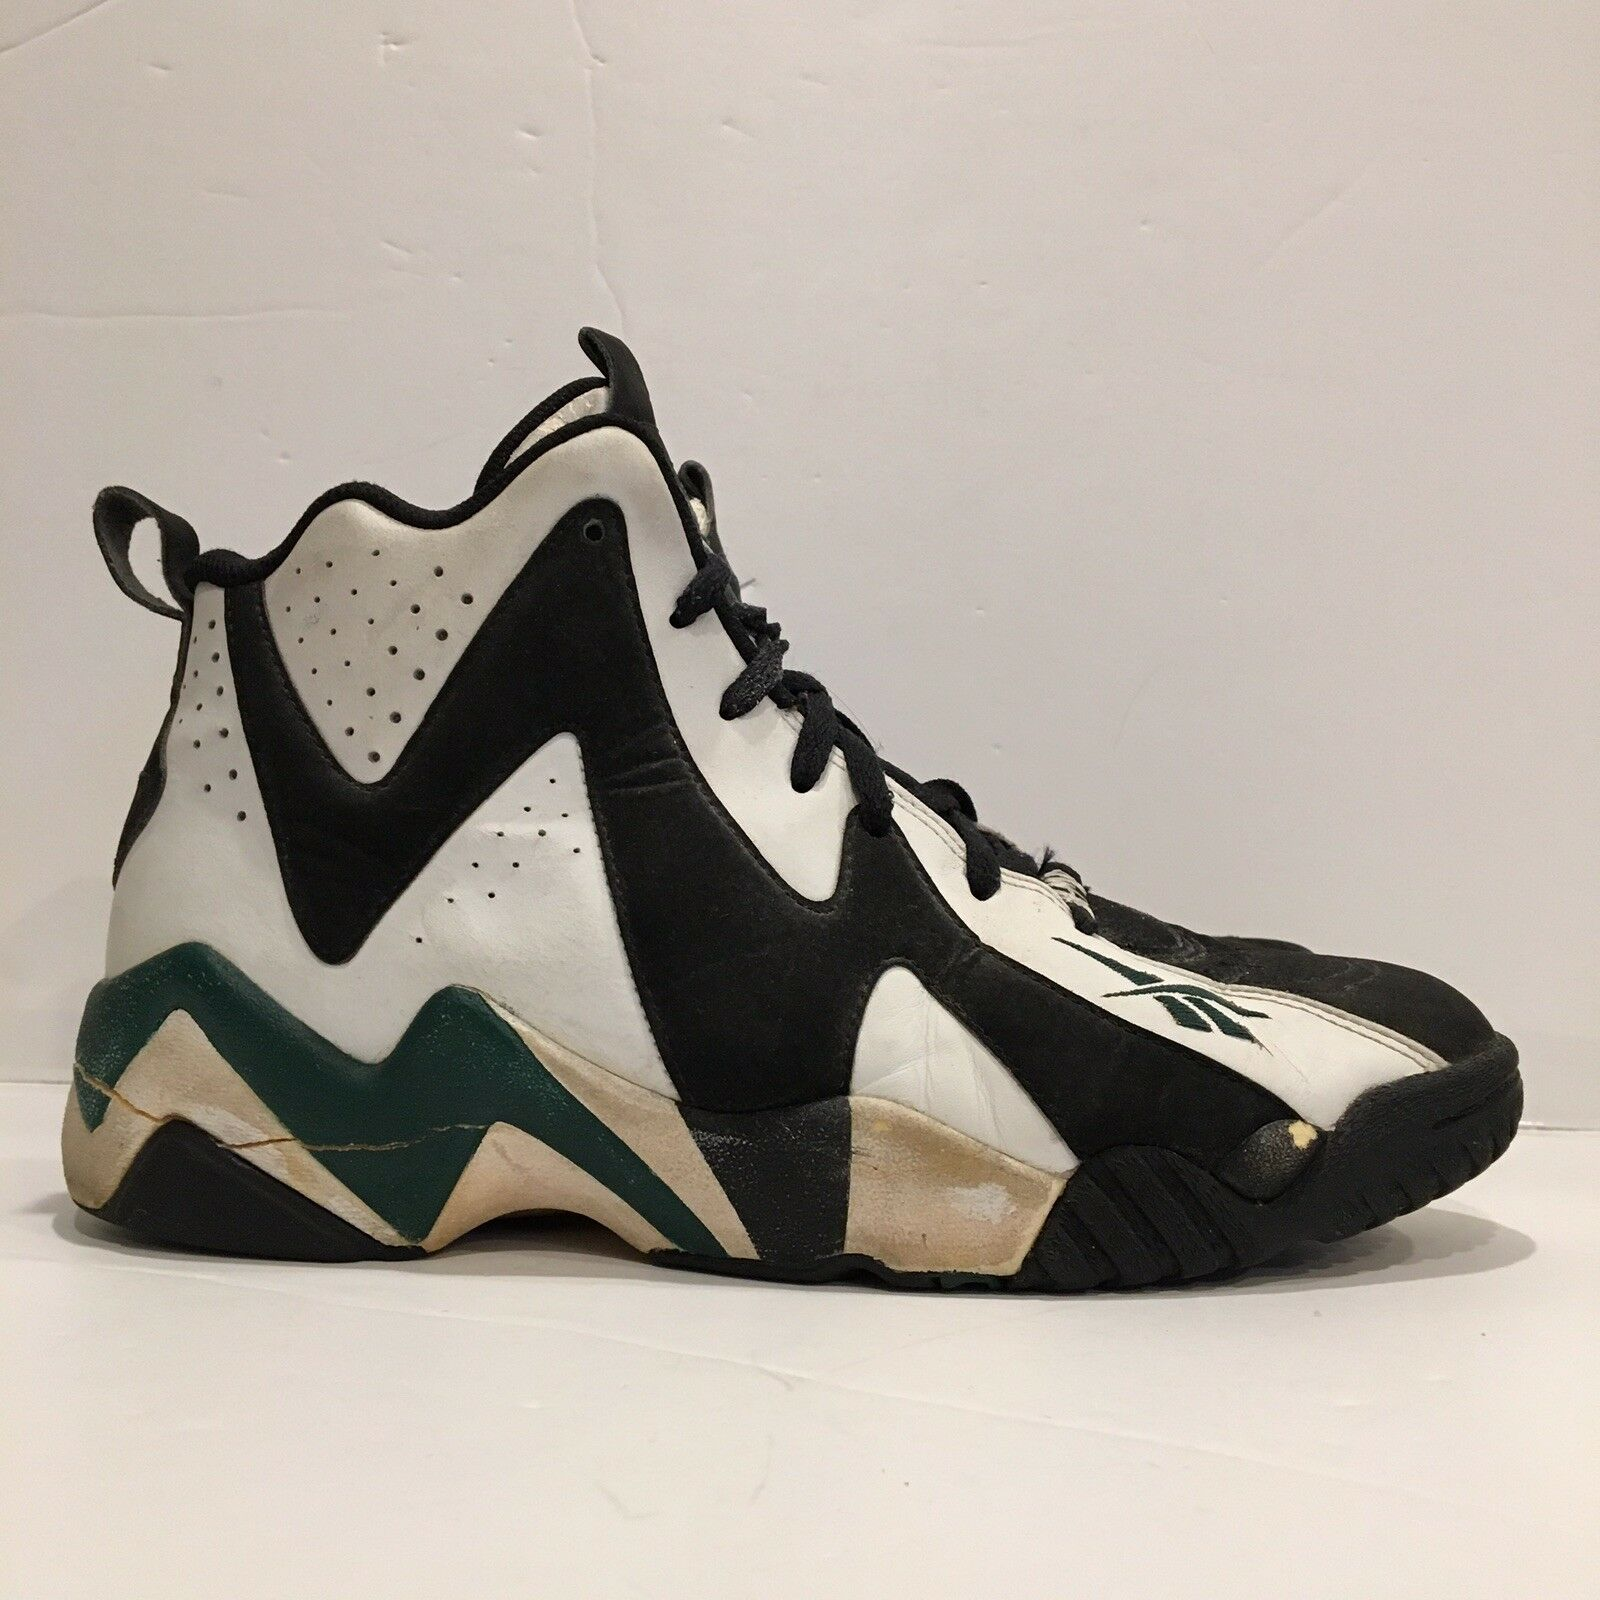 Reebok Kamikaze 2 II Mid sz 11 NBA Seattle Supersonics NBA Shawn Kemp OG 1995